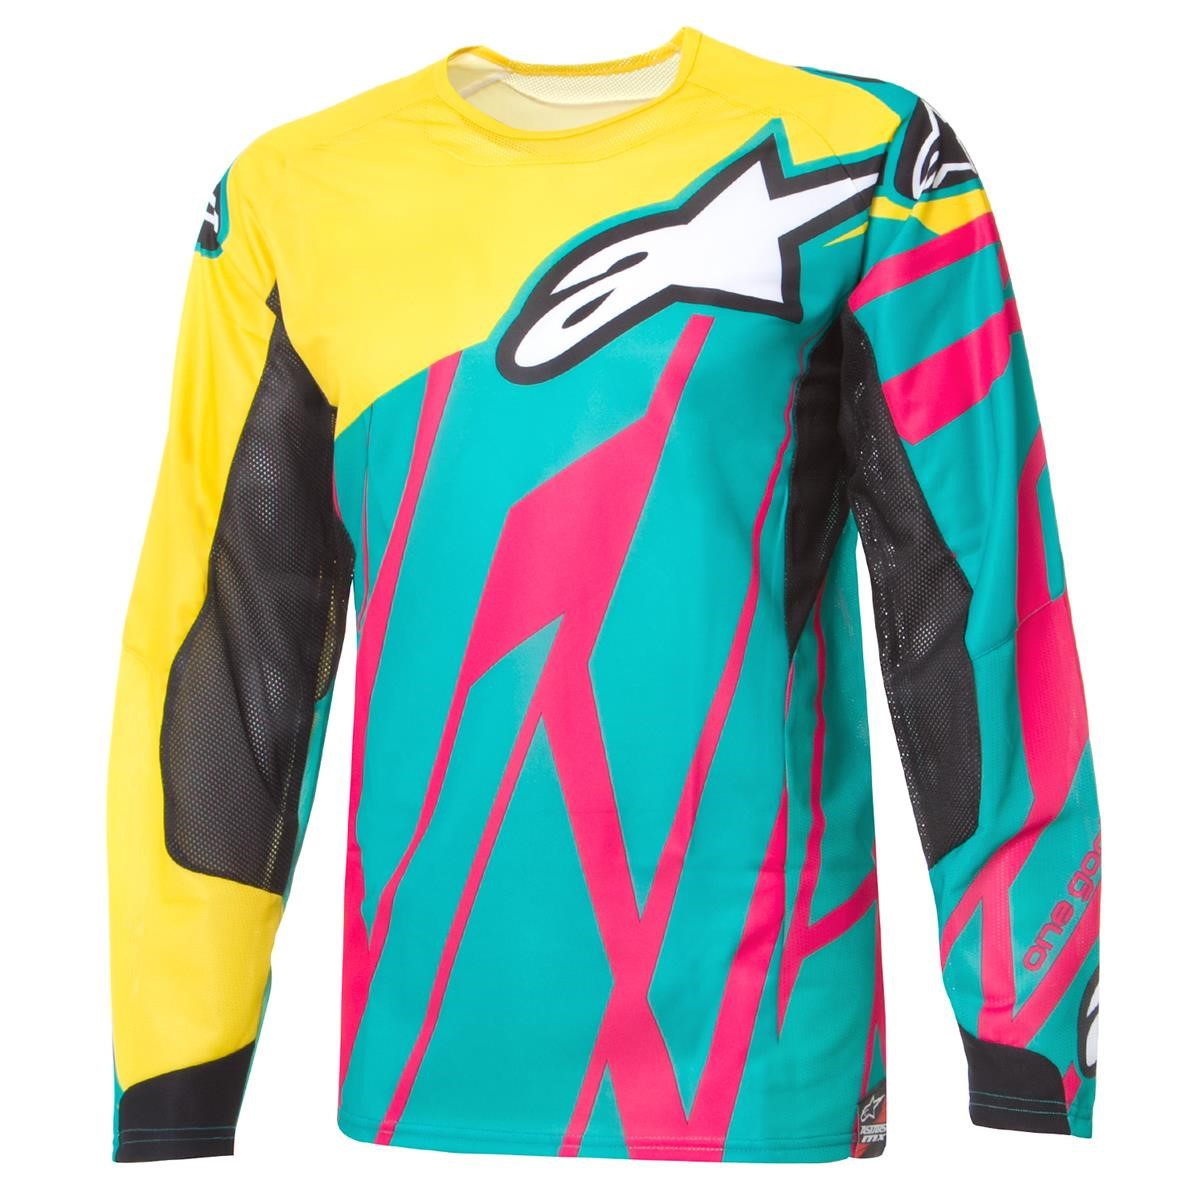 Alpinestars Jersey Techstar Teal/Yellow/Magenta